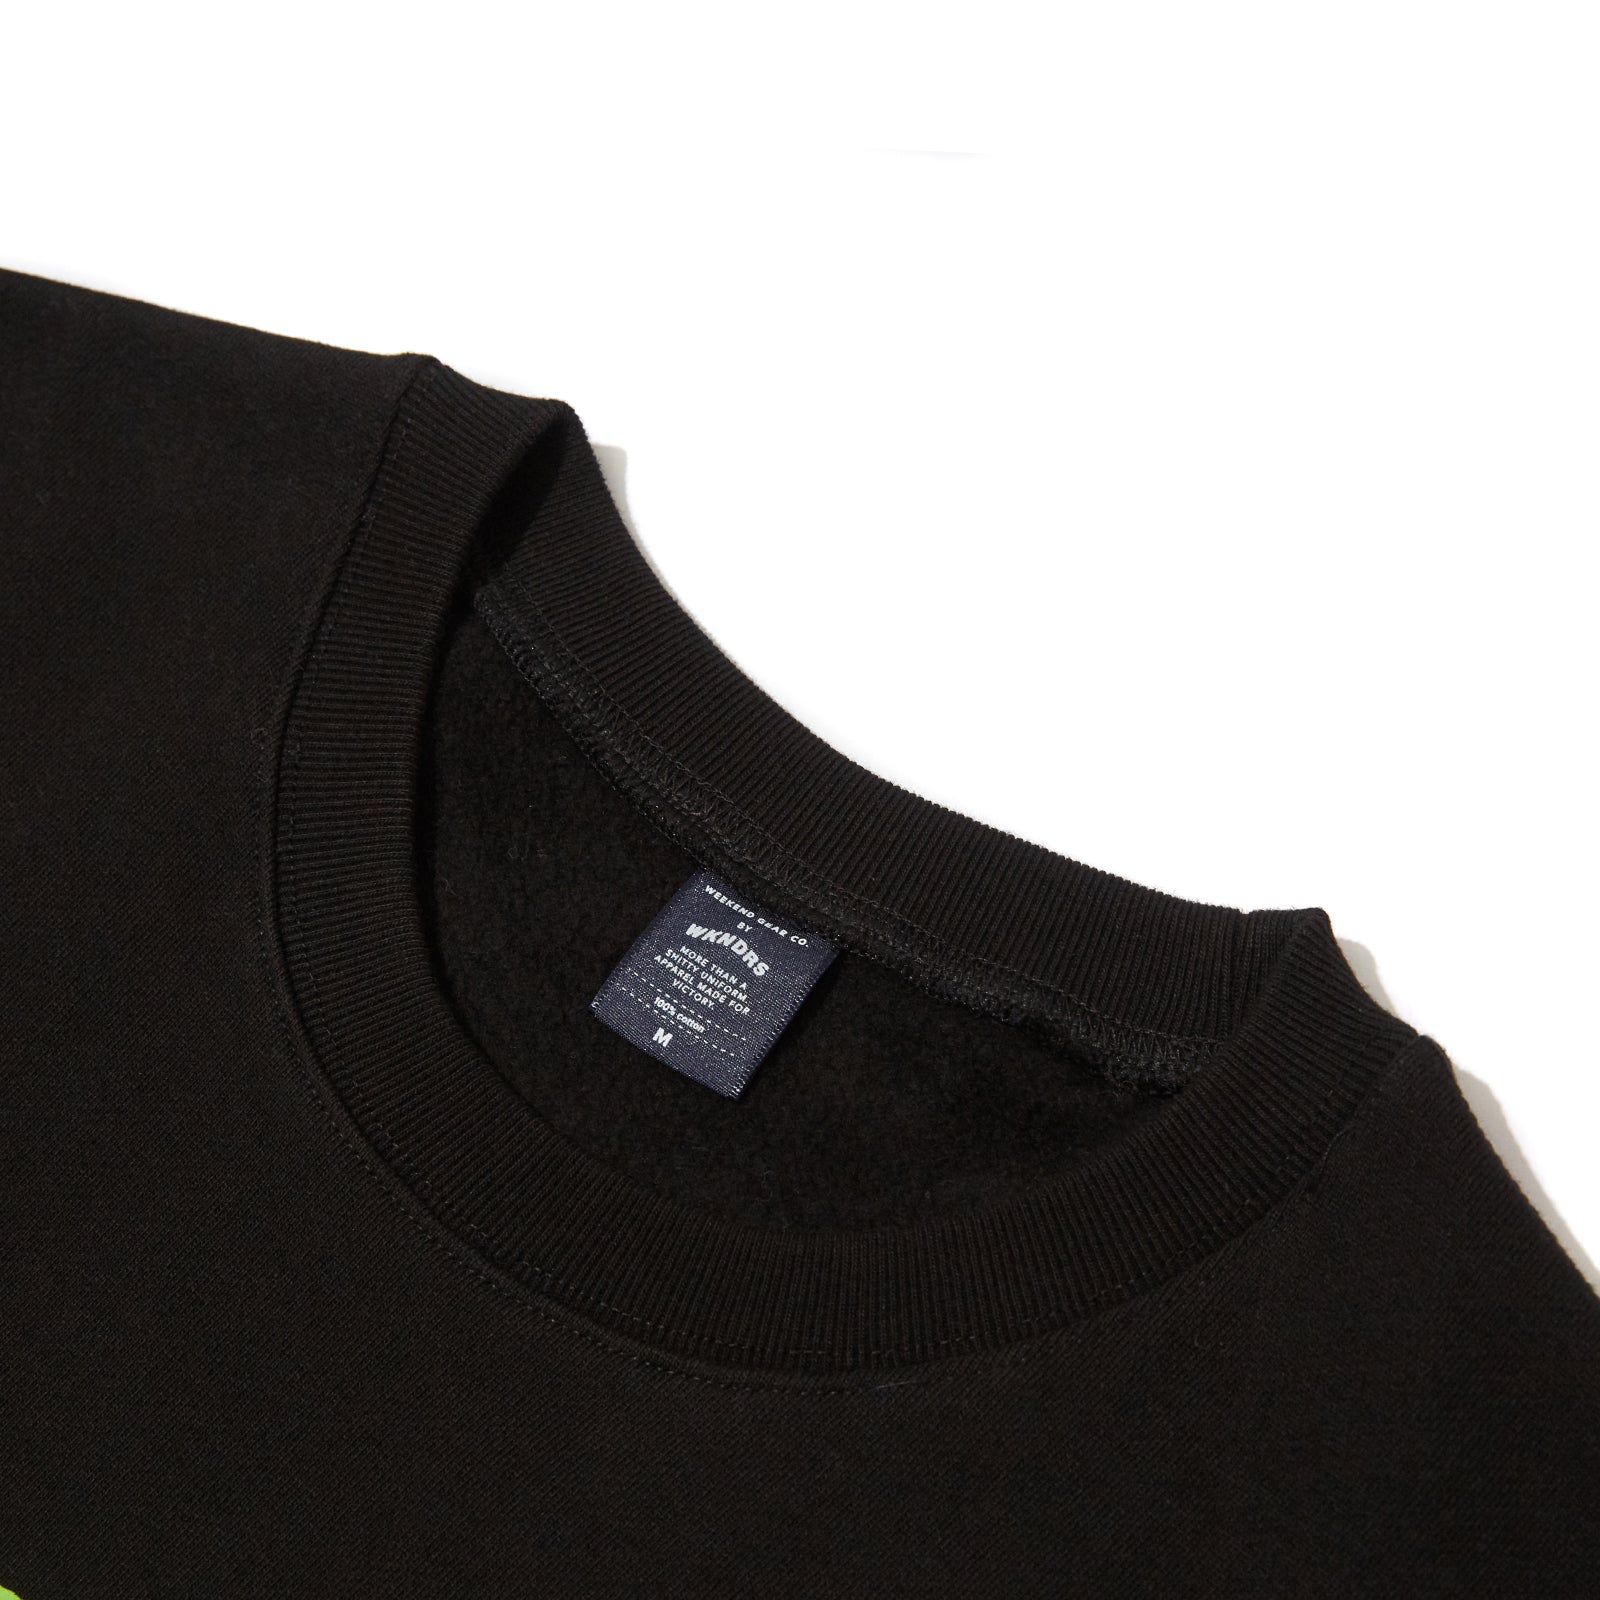 FSS SWEATSHIRT (BLACK)